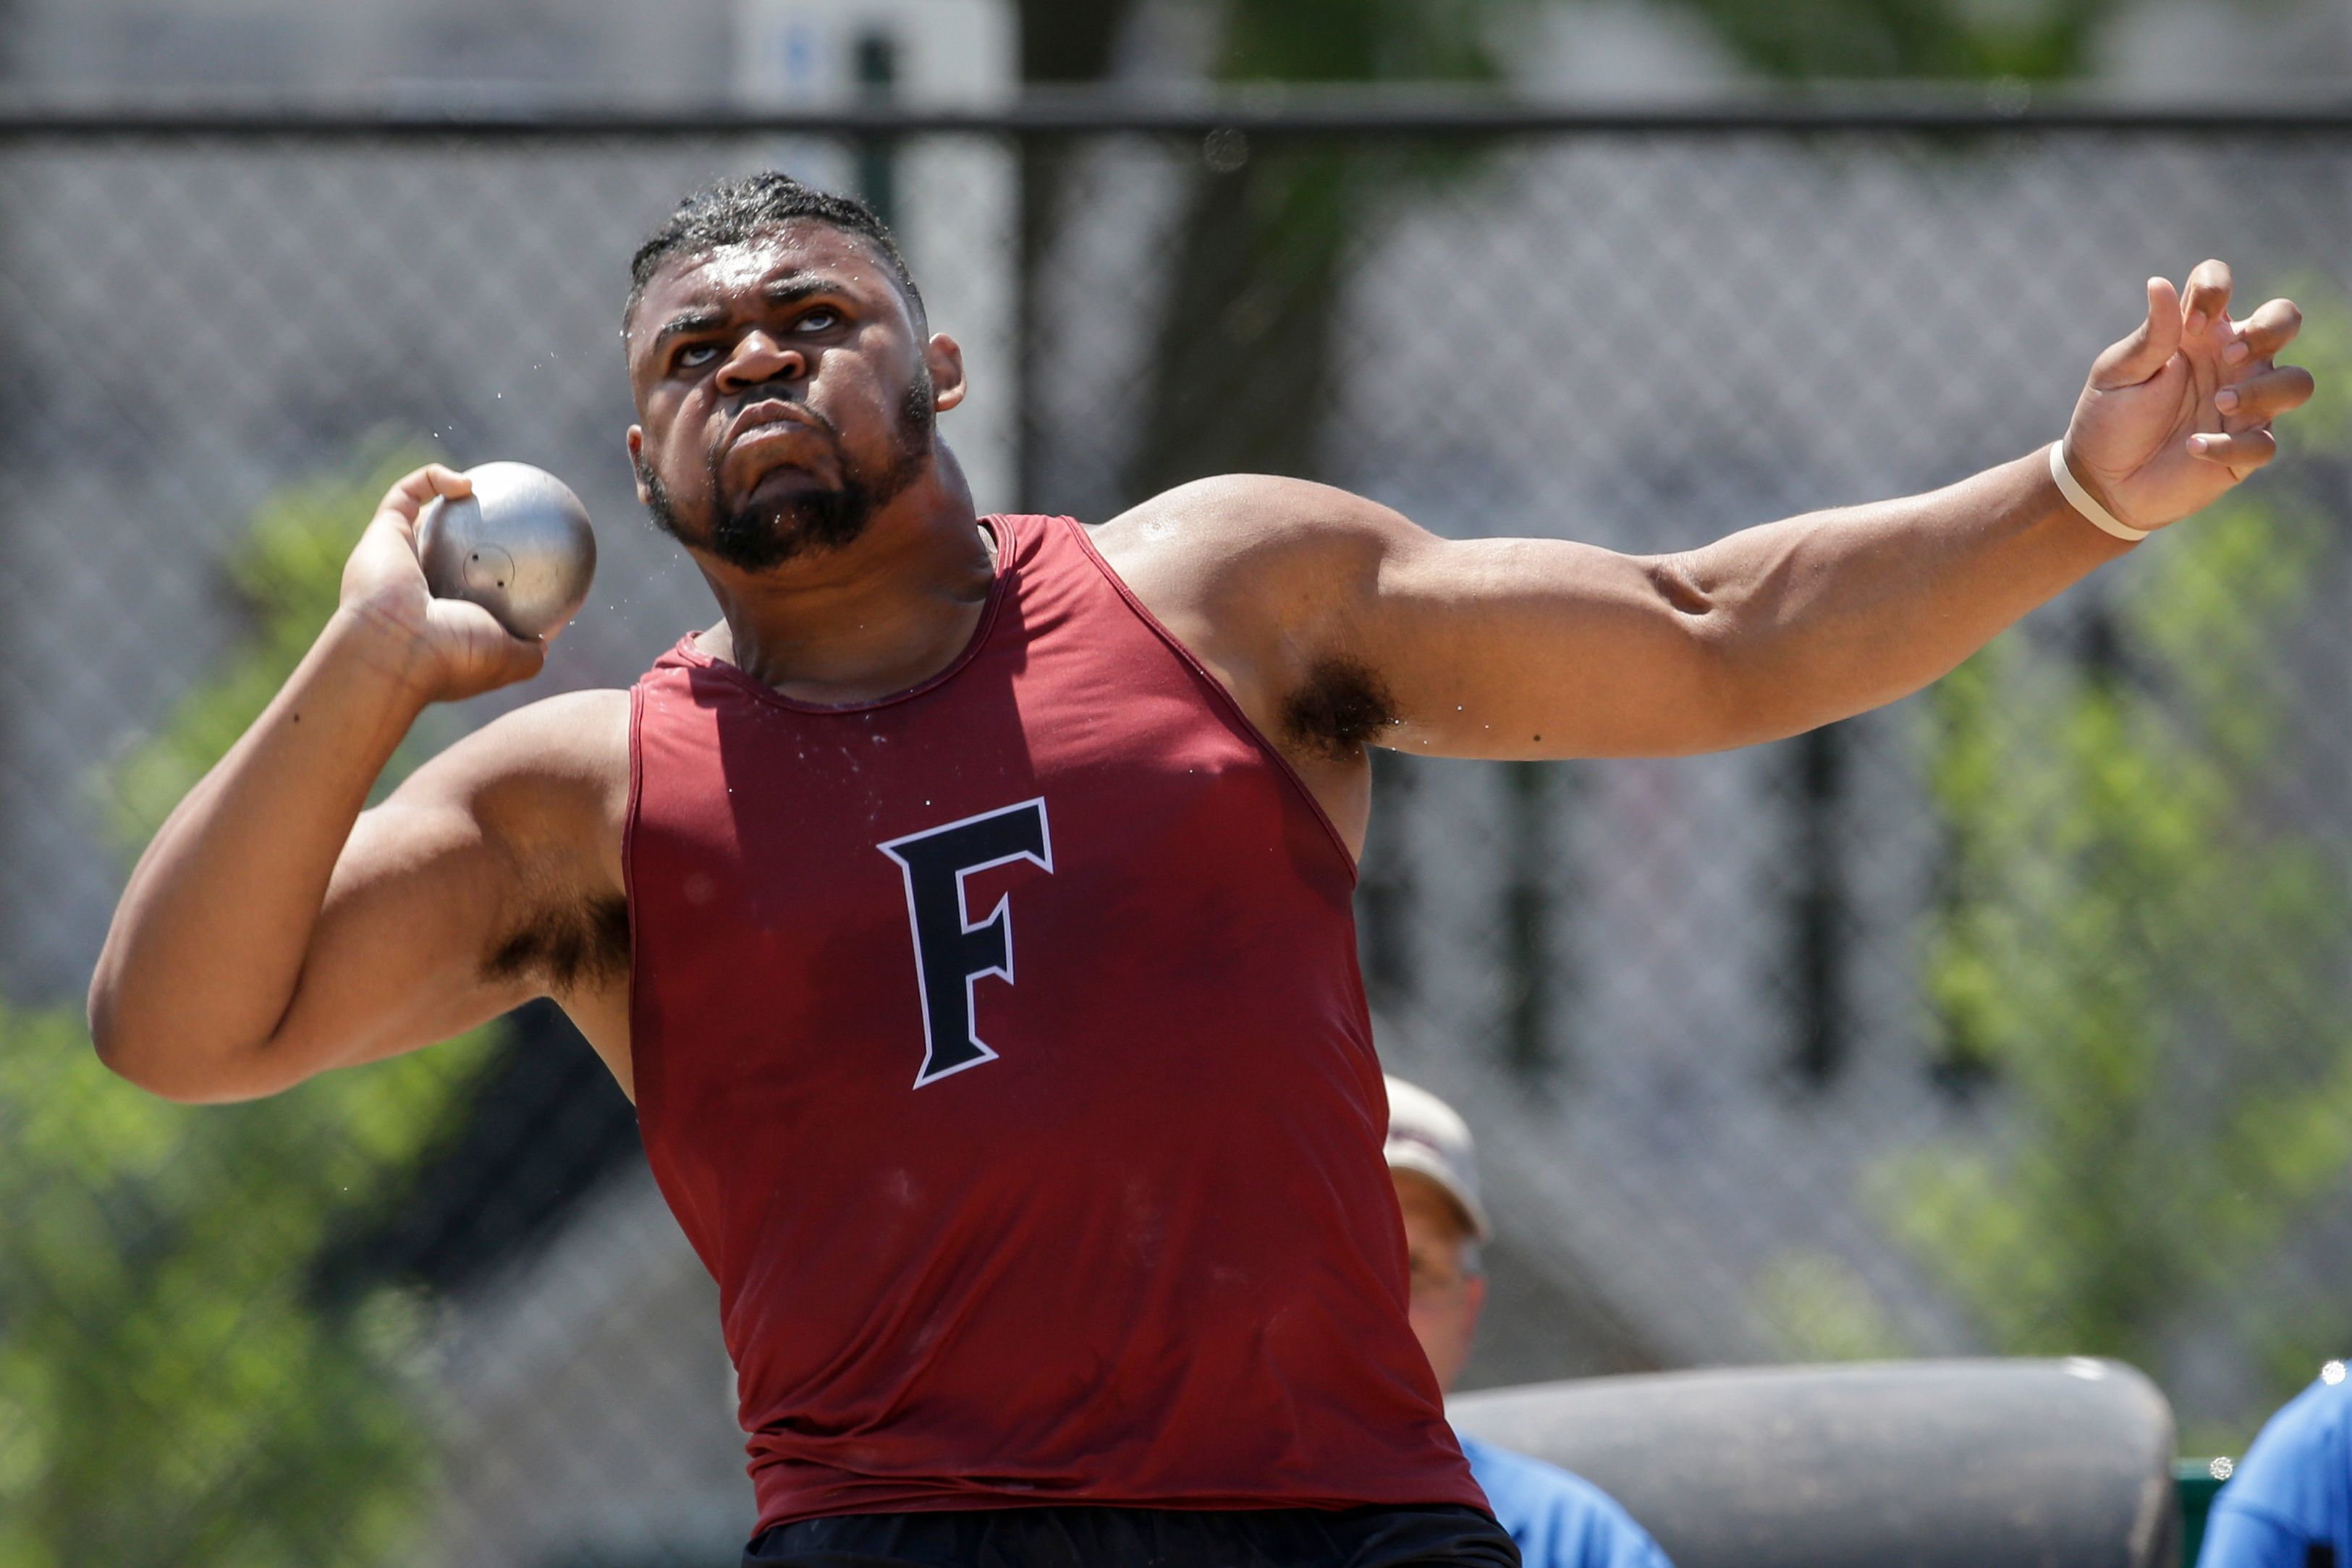 Fond du Lac's Andrew Stone throws in the Division 1 shot put finals last season at the WIAA state track and field meet at Veterans Memorial Stadium in La Crosse.